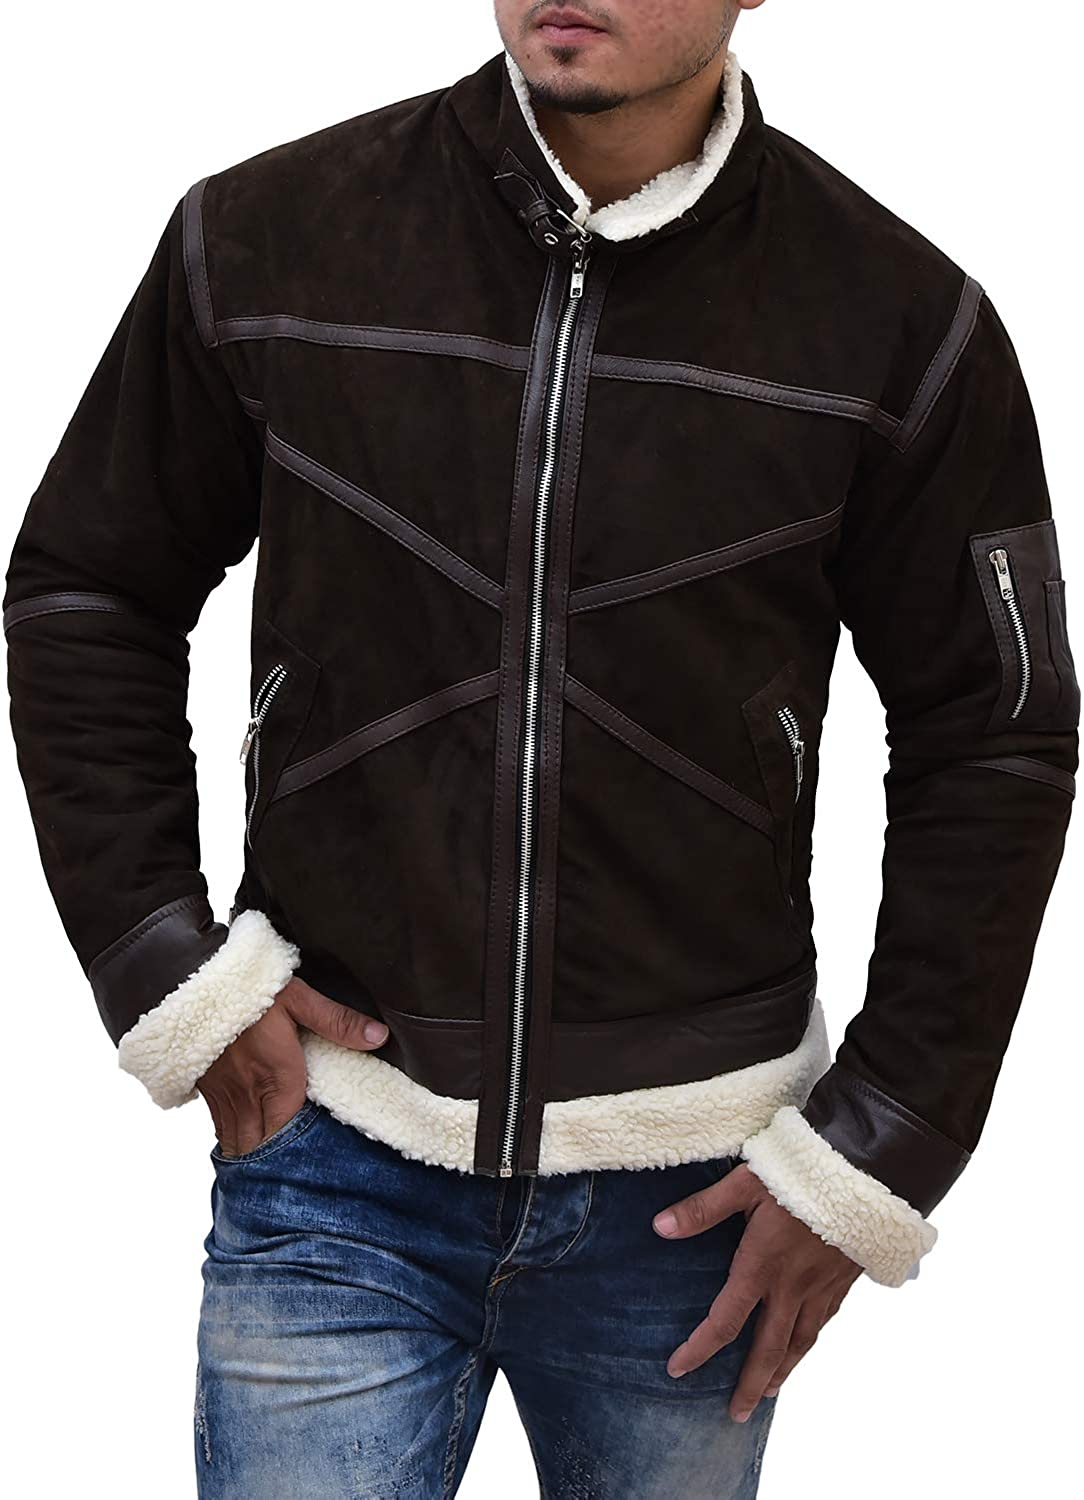 Abbraci Men's Winter Faux Leather Jacket Brown Motorcycle Bomber Shearling Suede Stand Collar Fur Collar Jacket Men Coat